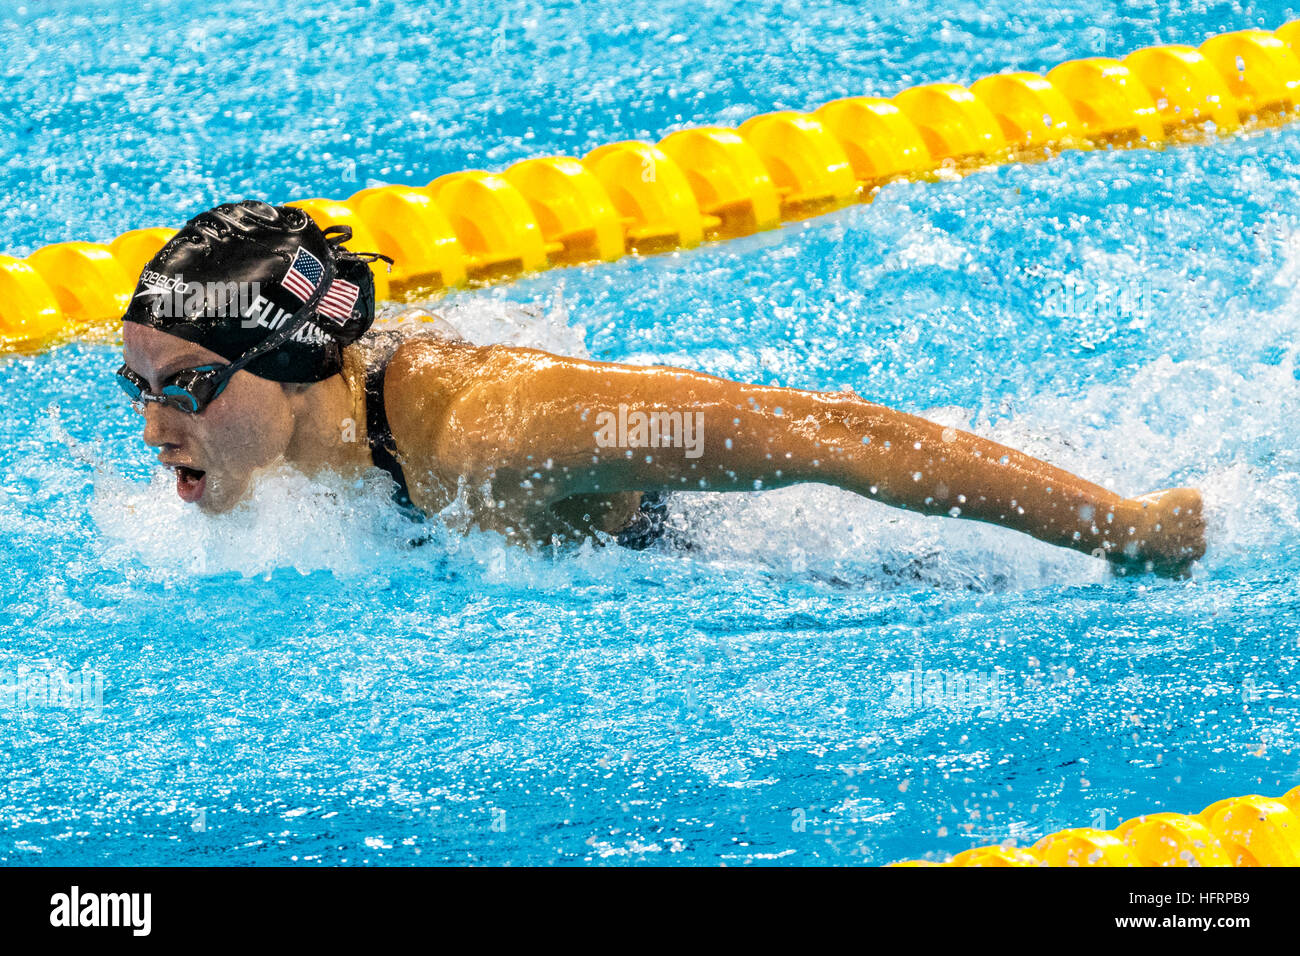 Rio de Janeiro, Brazil. 9 August 2016.   Hali Flickinger (USA) competing in the semifinal of the Women's 200m - Stock Image